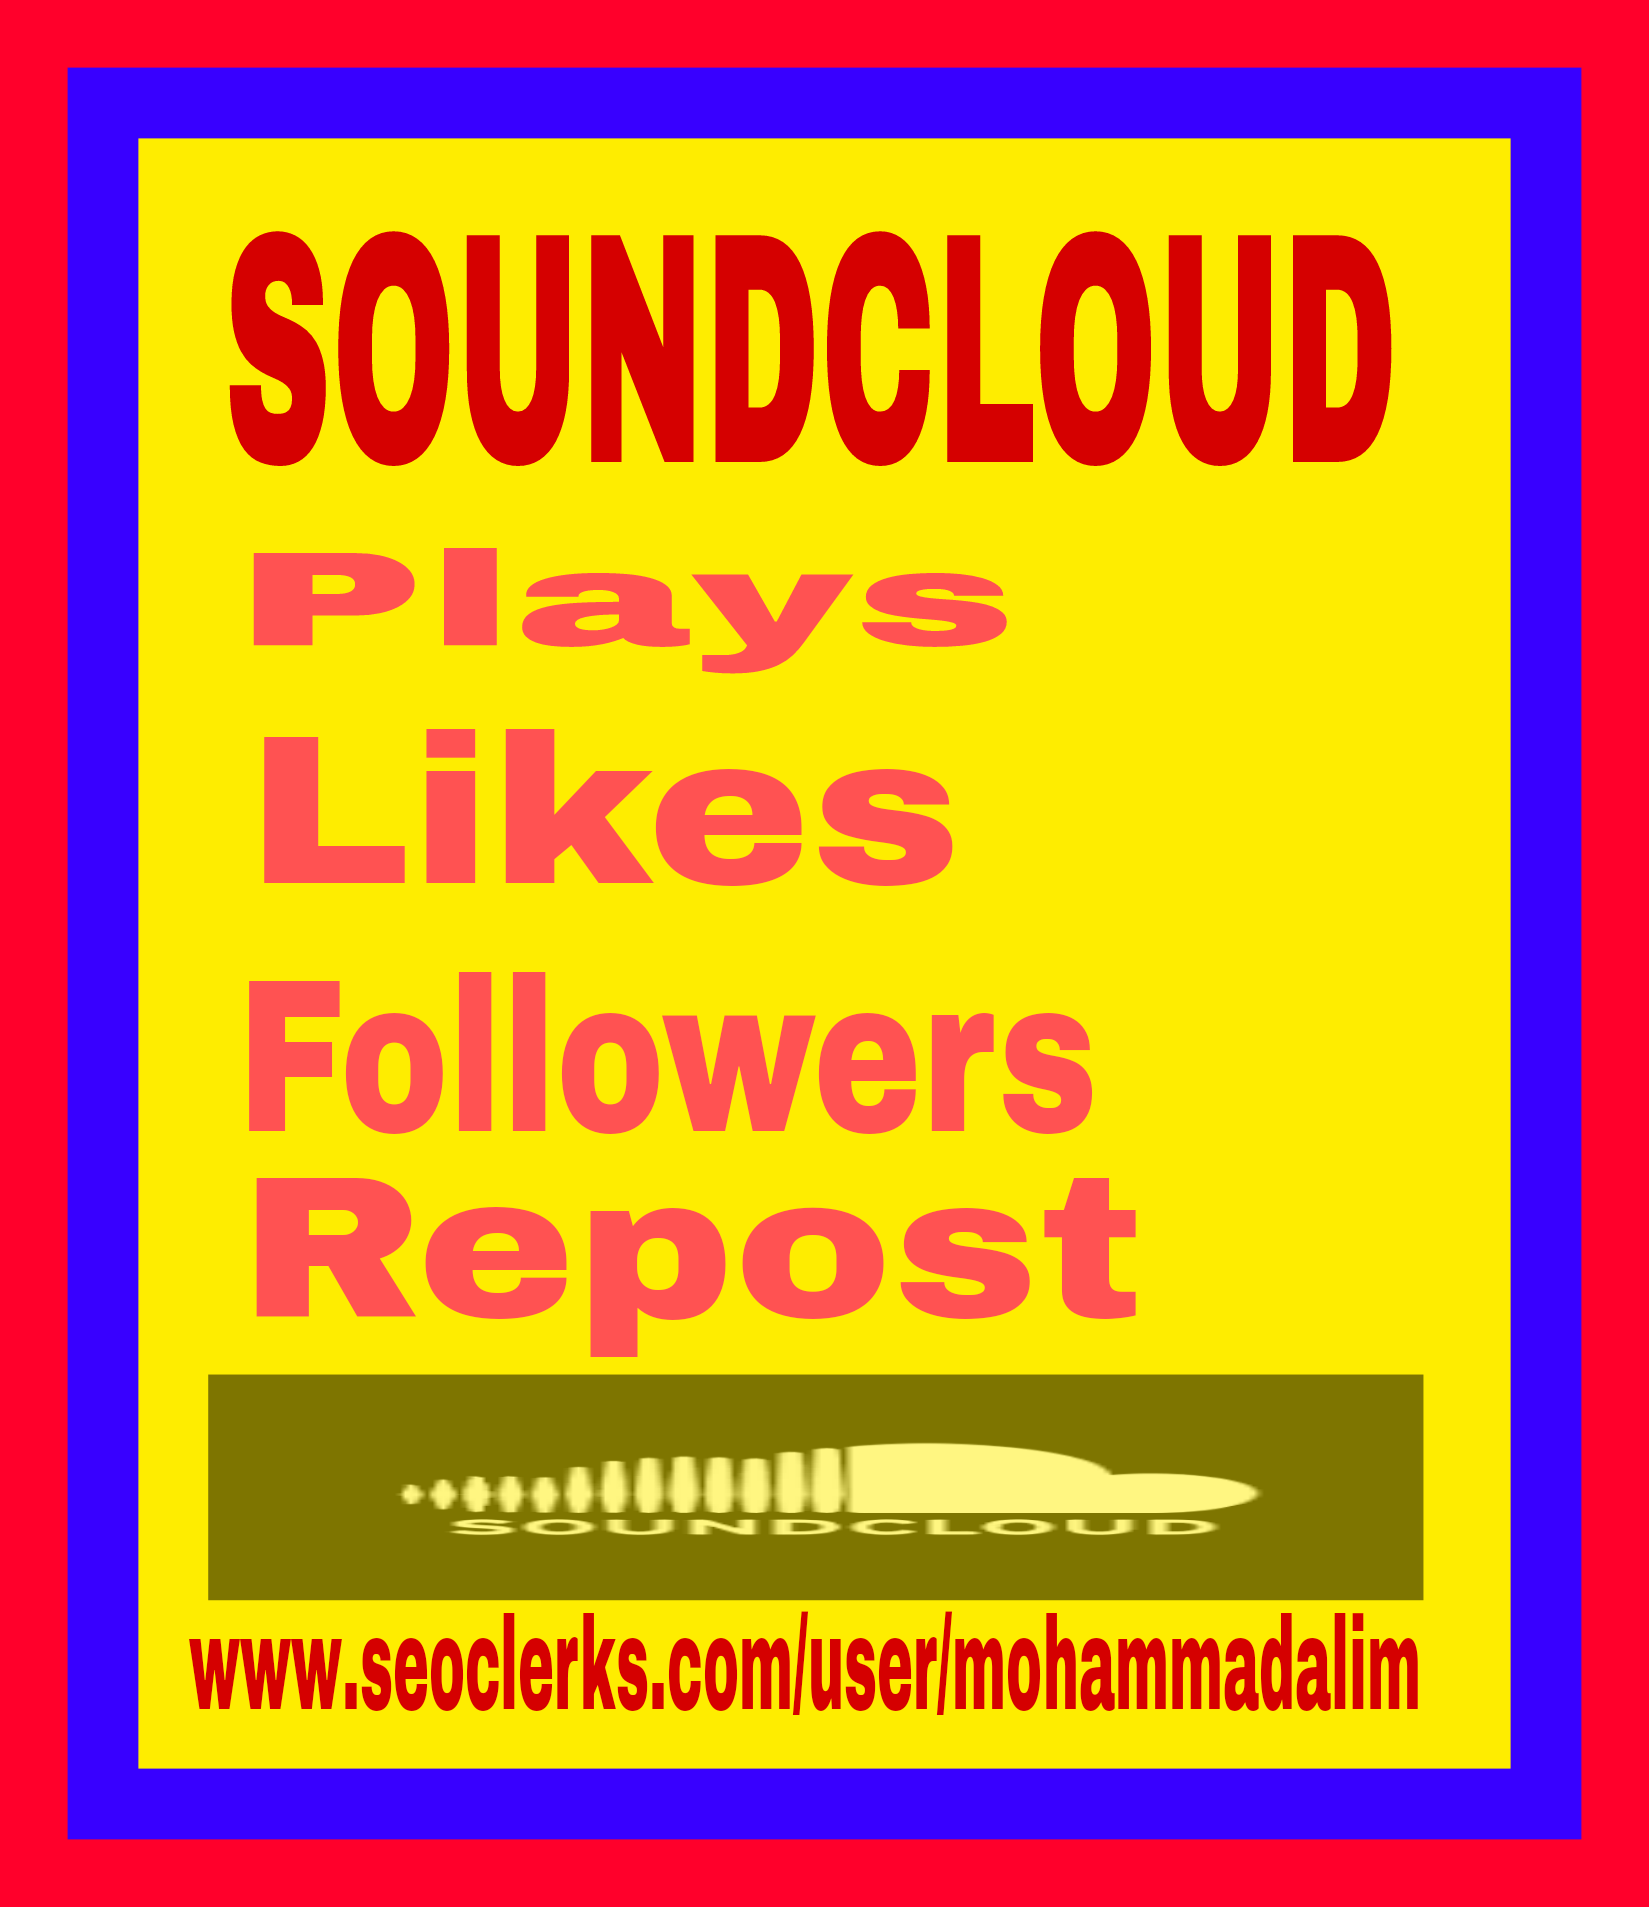 Add 900k hq Soundcloud plays 100 custom comments 100 likes 100 reposts and 30 followers  to your track